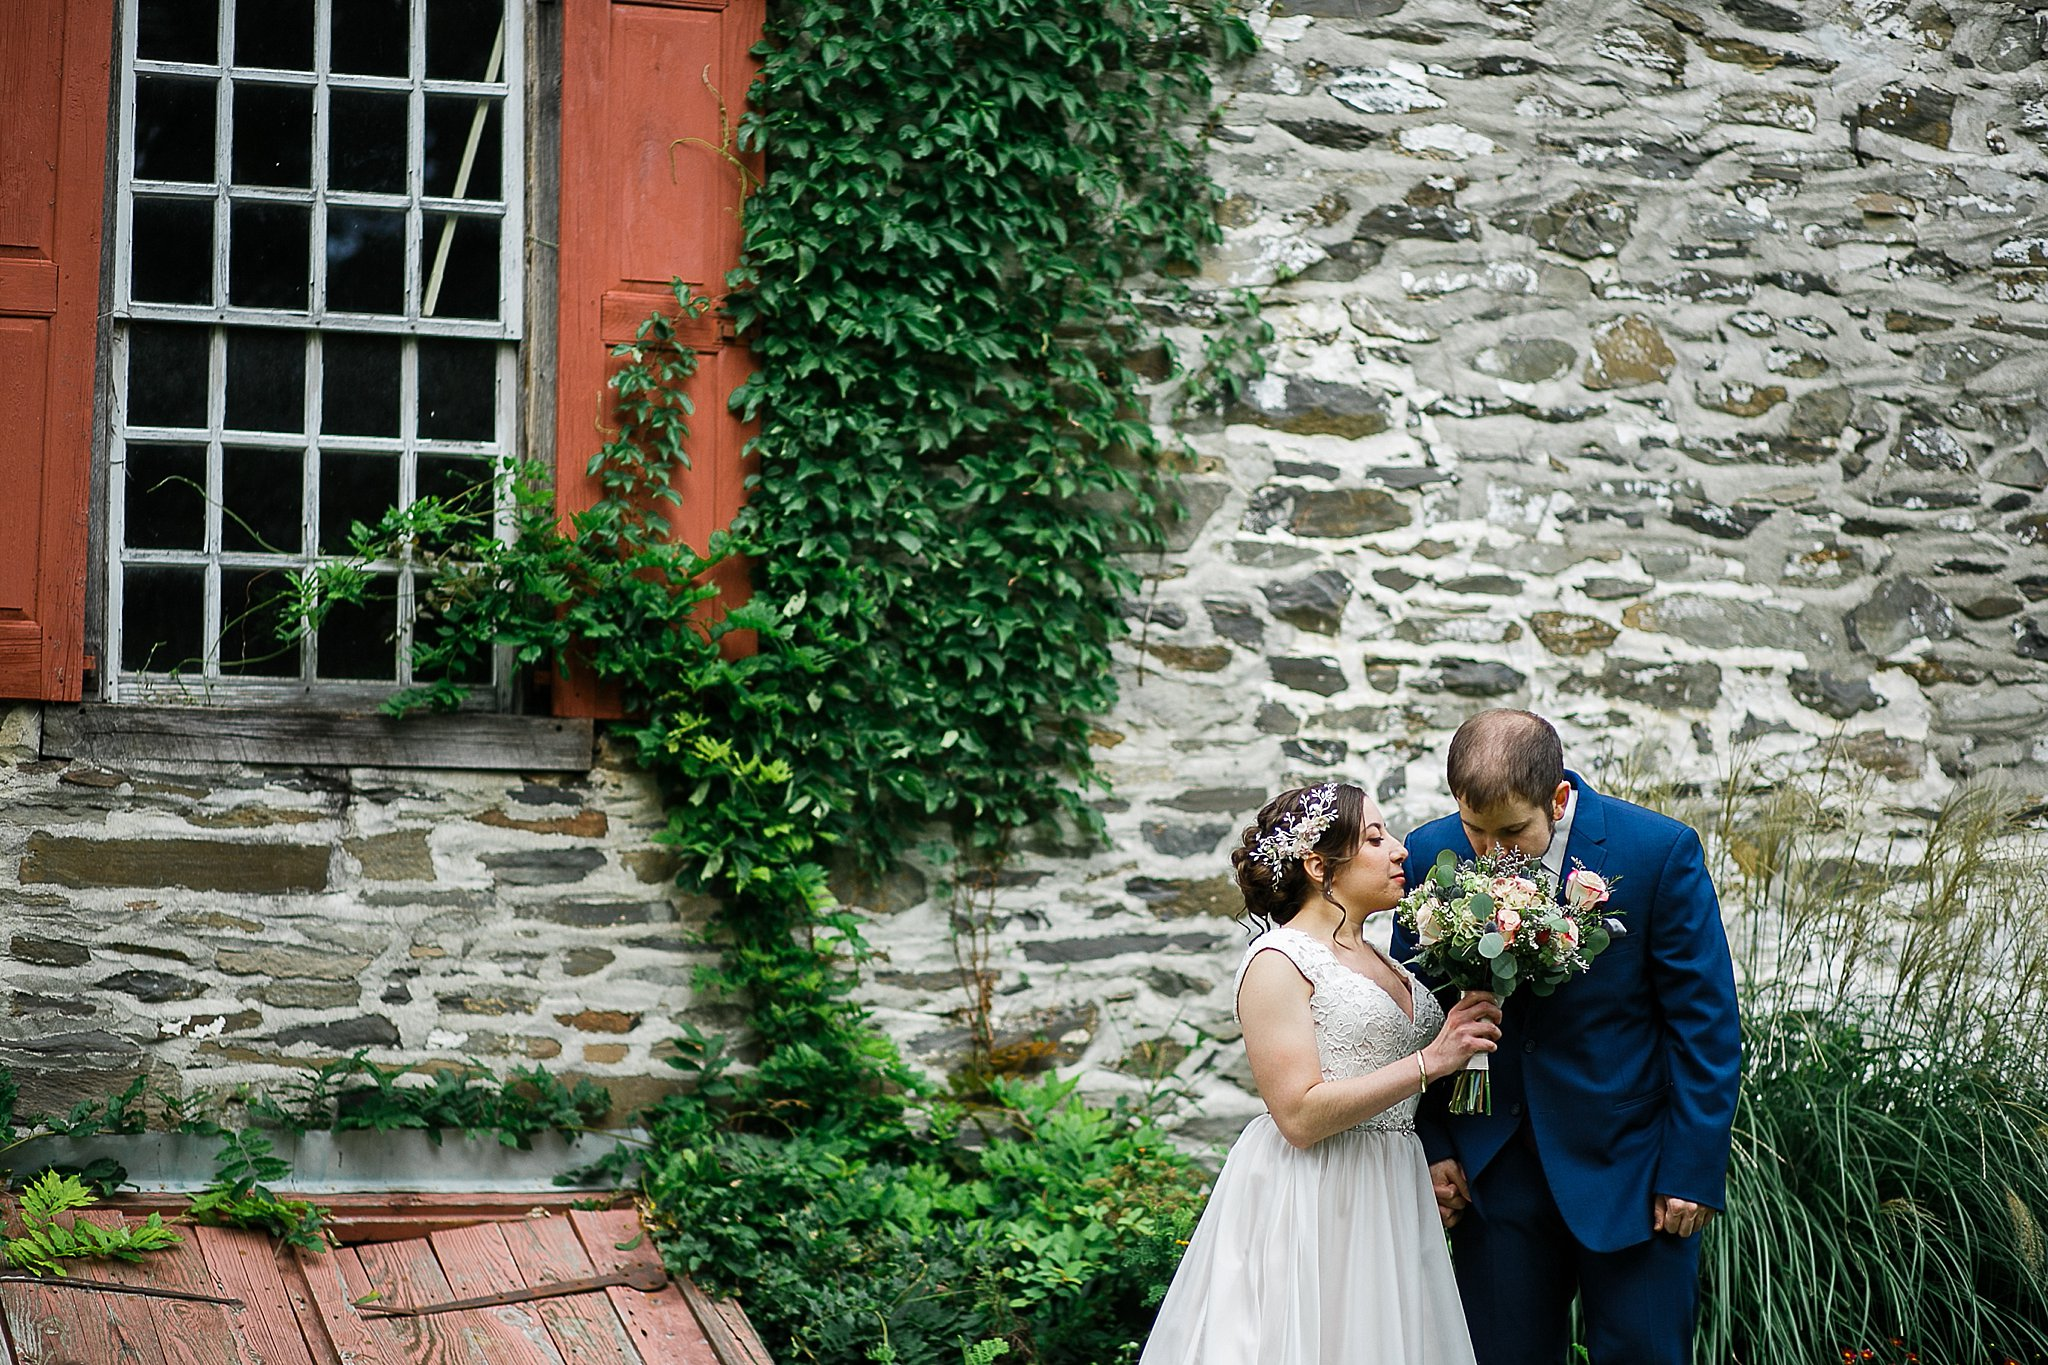 Mount Gulian Wedding Beacony New York Wedding Rustic Wedding Hudson Valley Wedding Photographer Sweet Alice Photography40.jpg